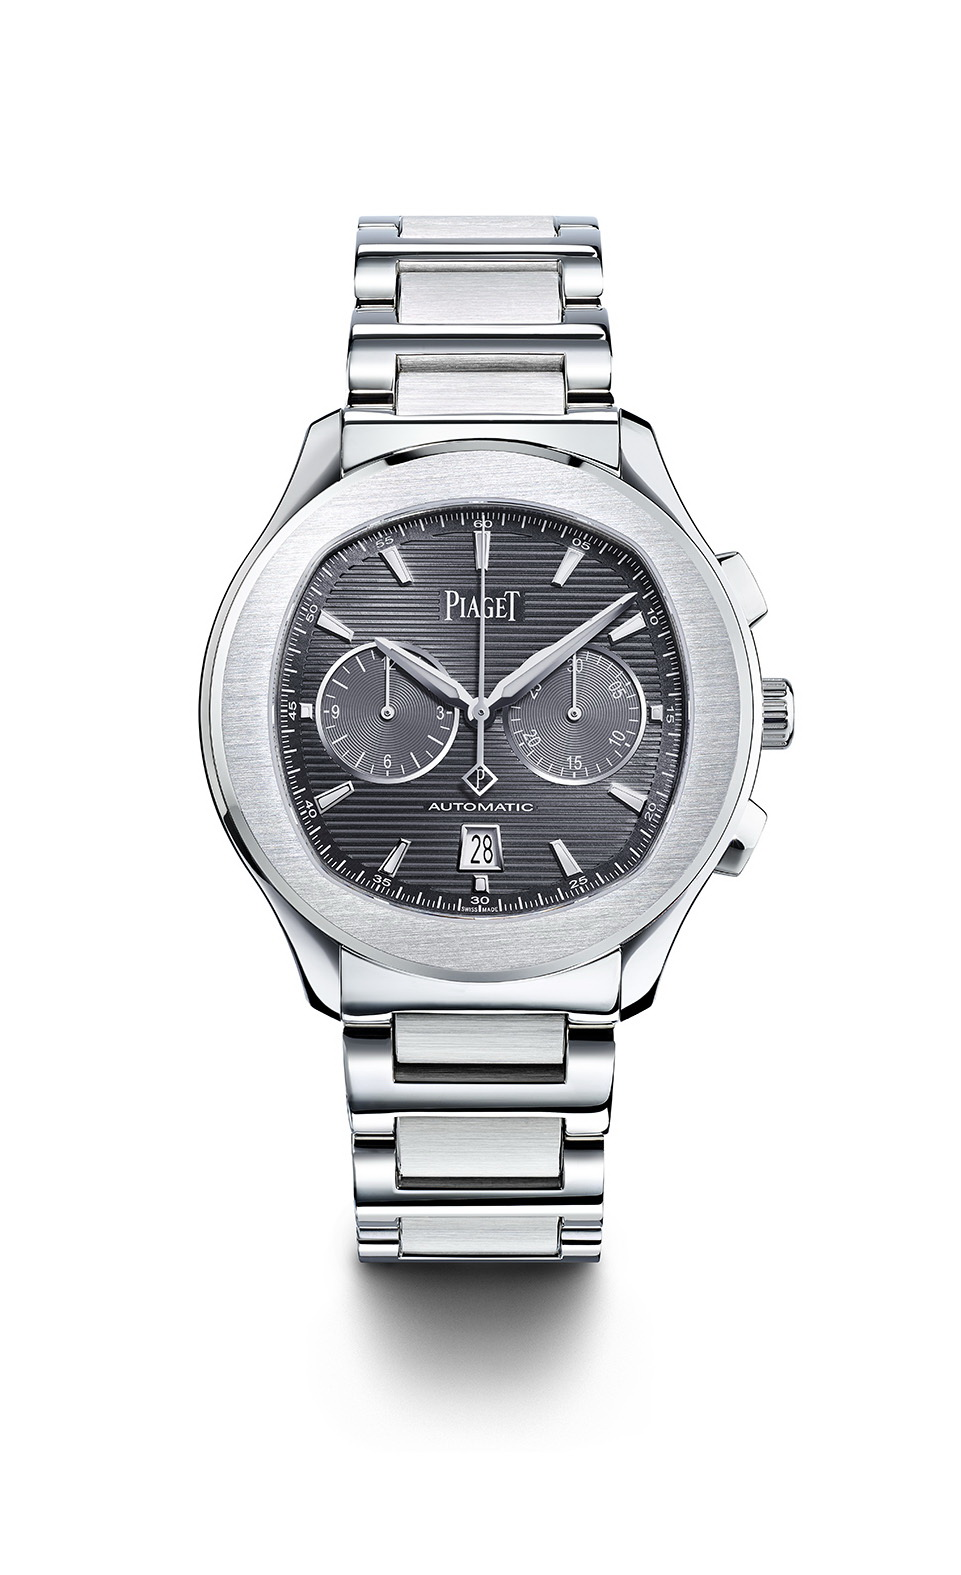 Piaget Polo S watch – 42 mm  Case in steel, sapphire case-back, slate grey dial with silvered appliques indexes with Superluminova, Manufacture Piaget 1160P self-winding mechanical chronograph movement (Hours, Minutes, Date at 6 o'clock, Chronograph with central seconds, 30-minute counter at 3 o'clock, 12 hours counter at 9', slate grey oscillating weight) 11,2 mm thickness and water resistant up to 100 m Bracelet in steel with integrated folding clasp.